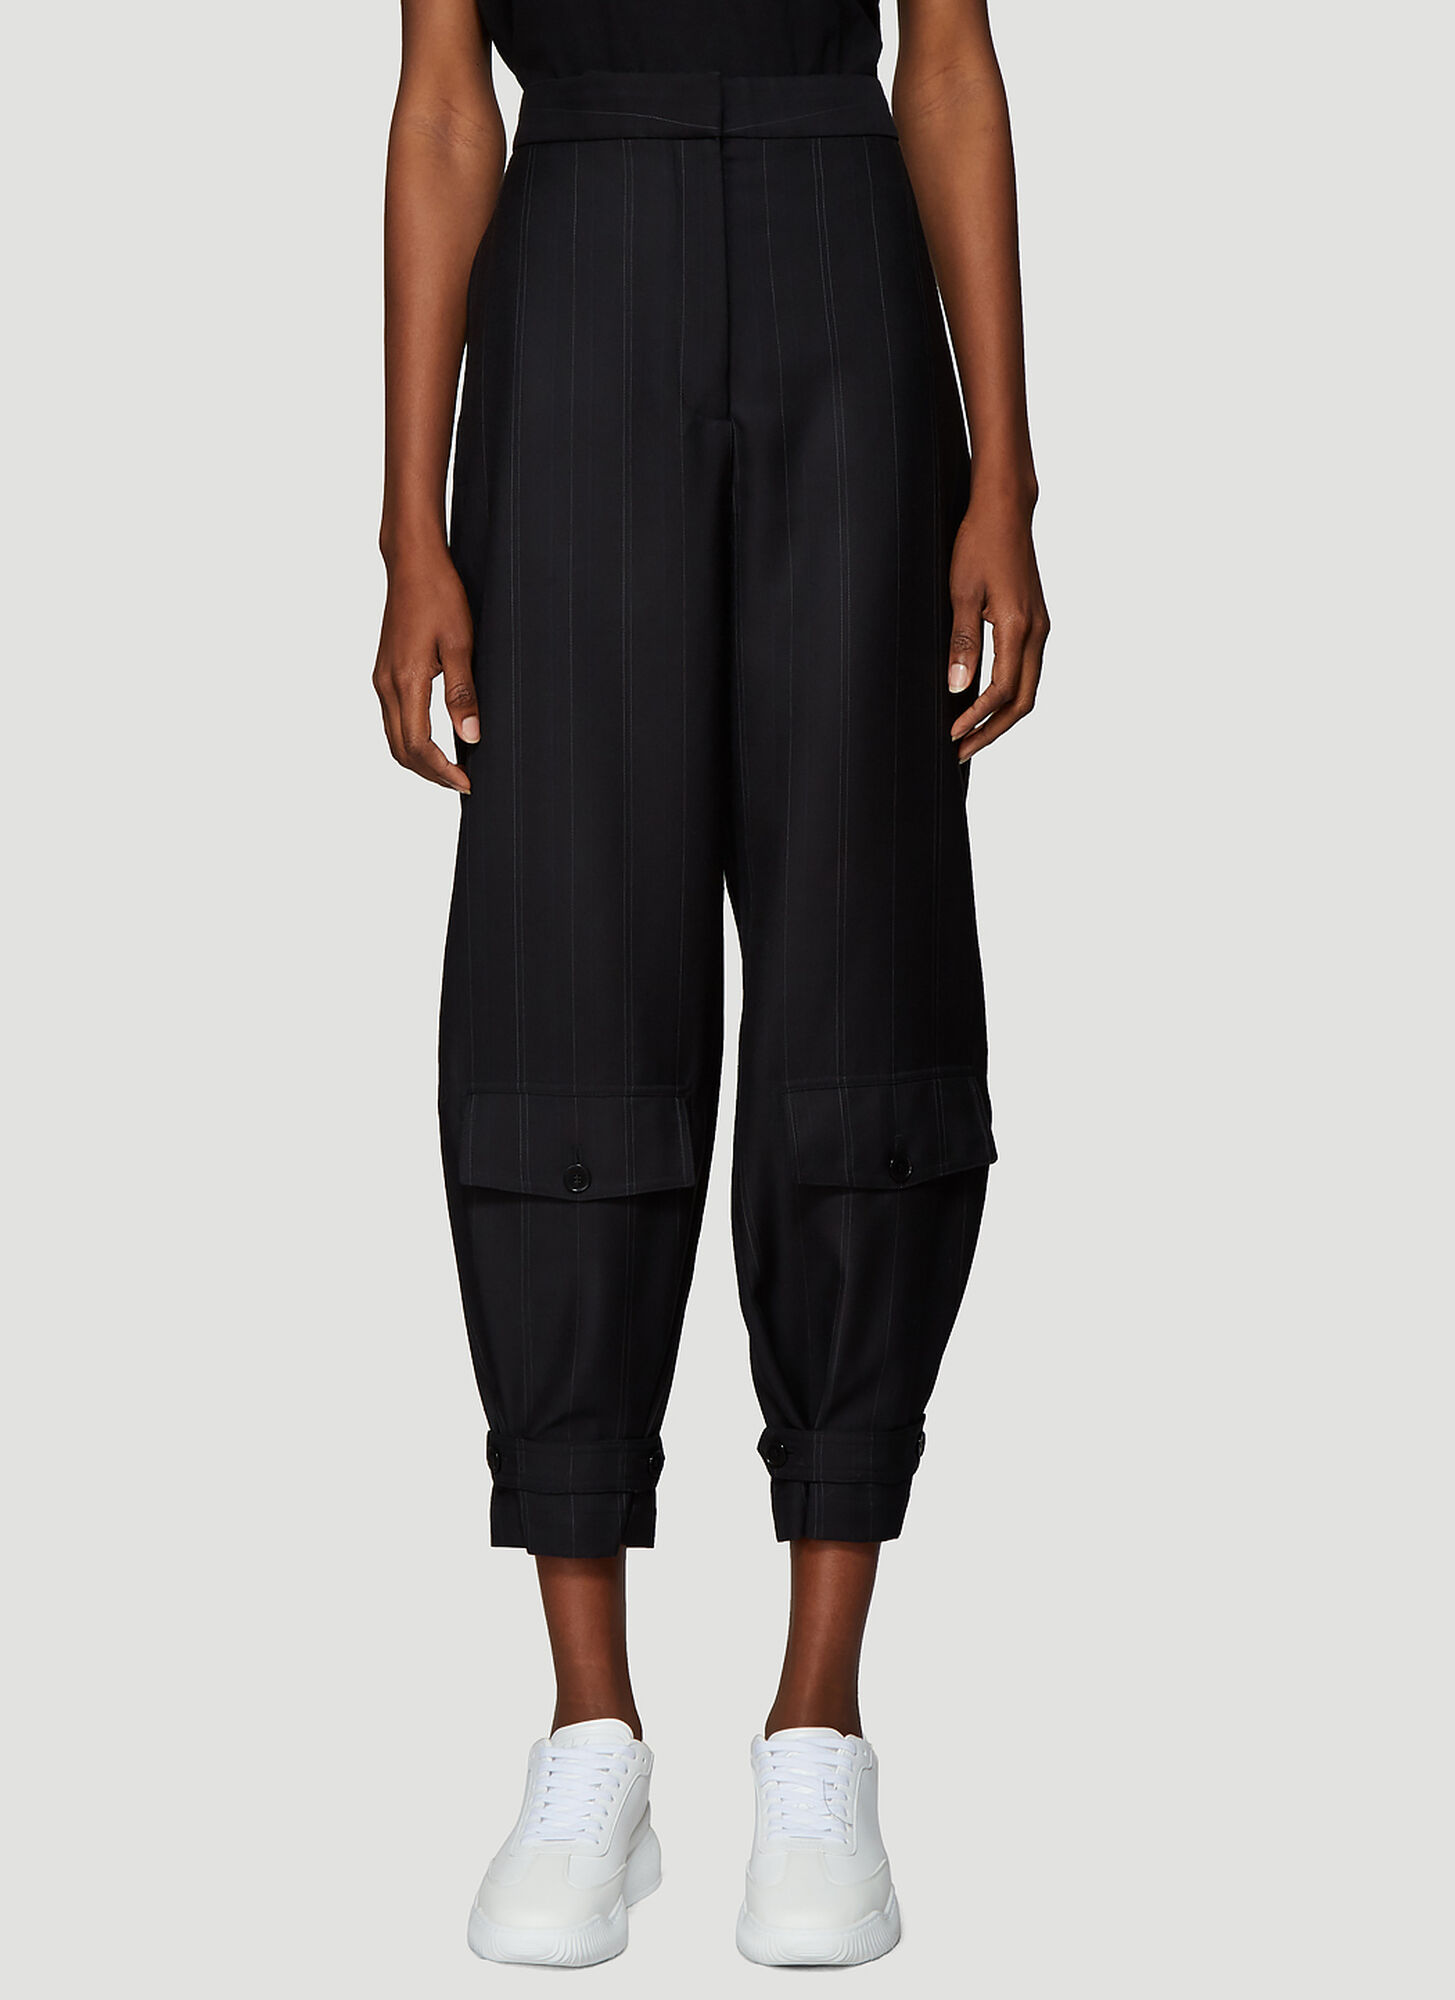 Stella McCartney Tapered Tailored Pants in Black